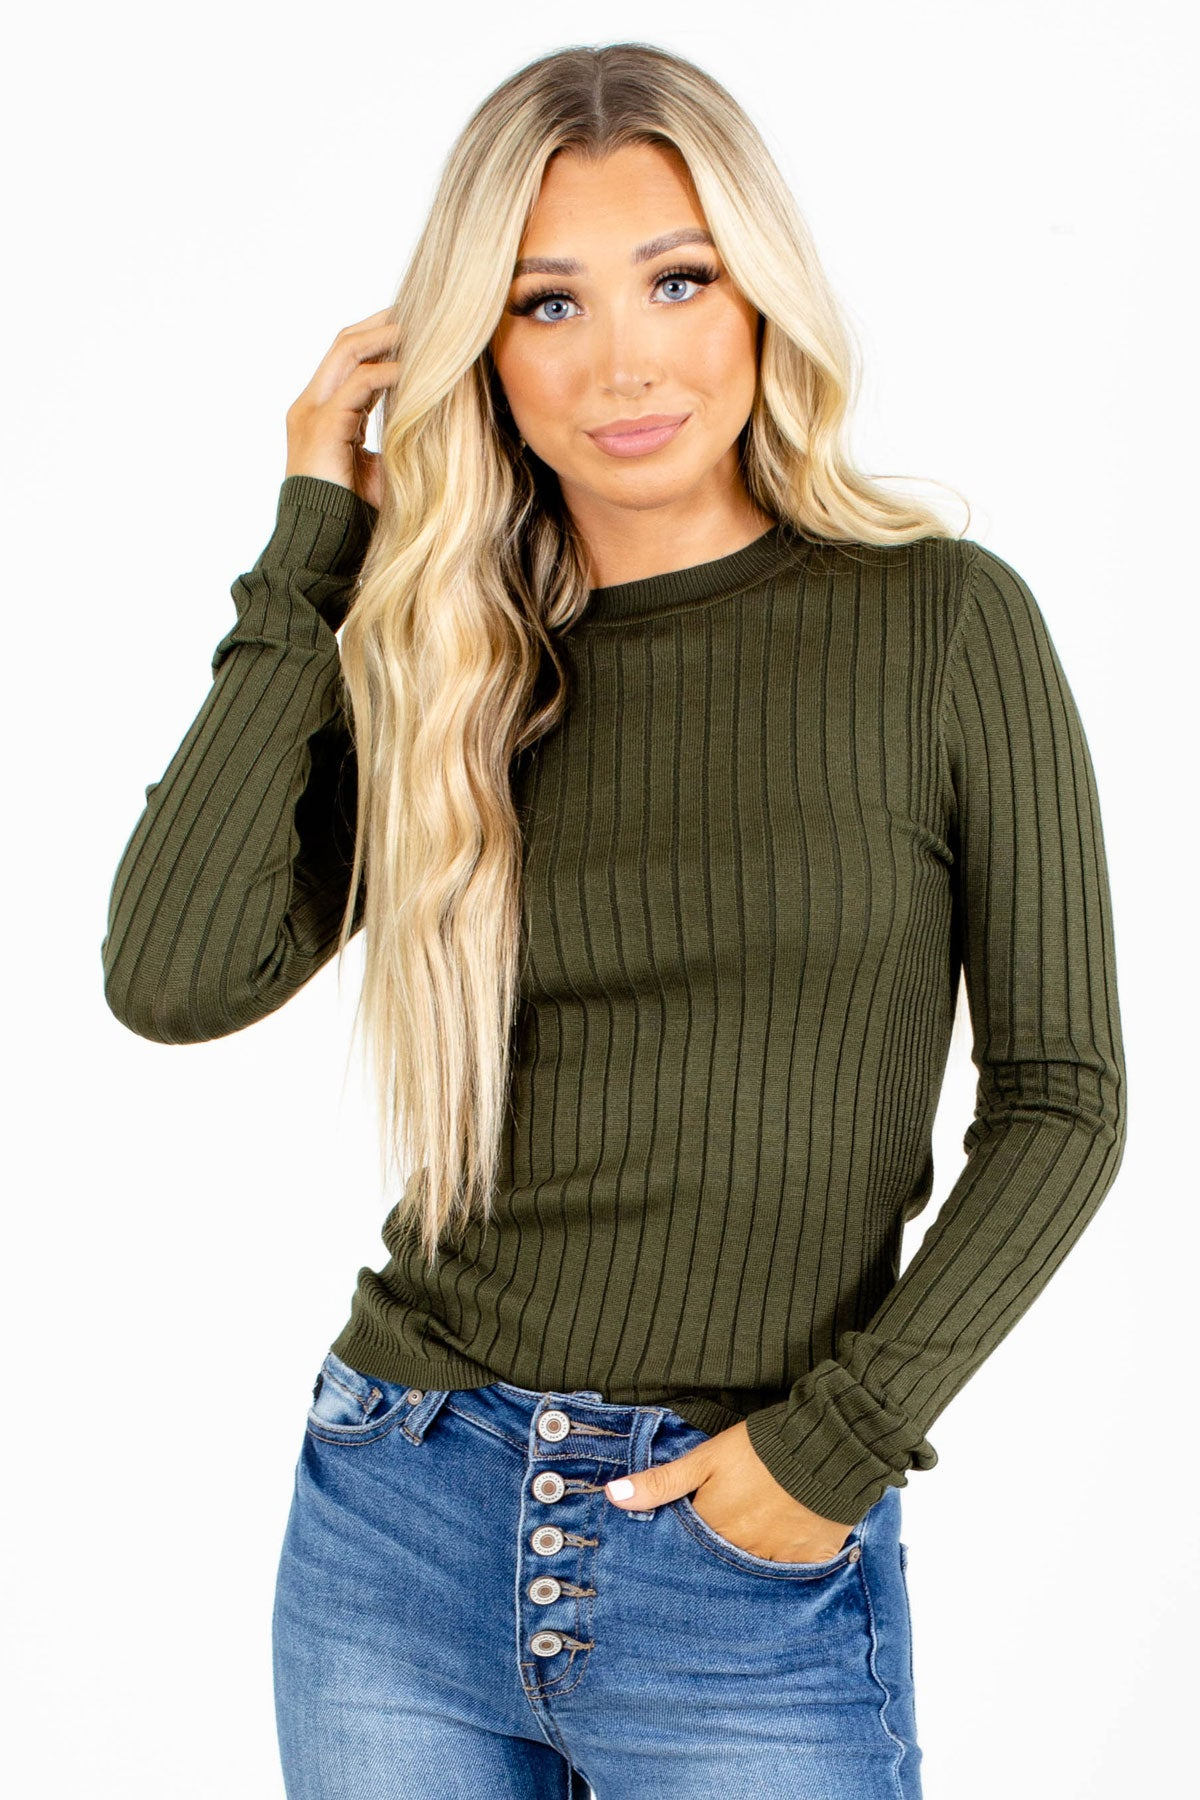 Ribbed Olive Green Boutique Tops for Women